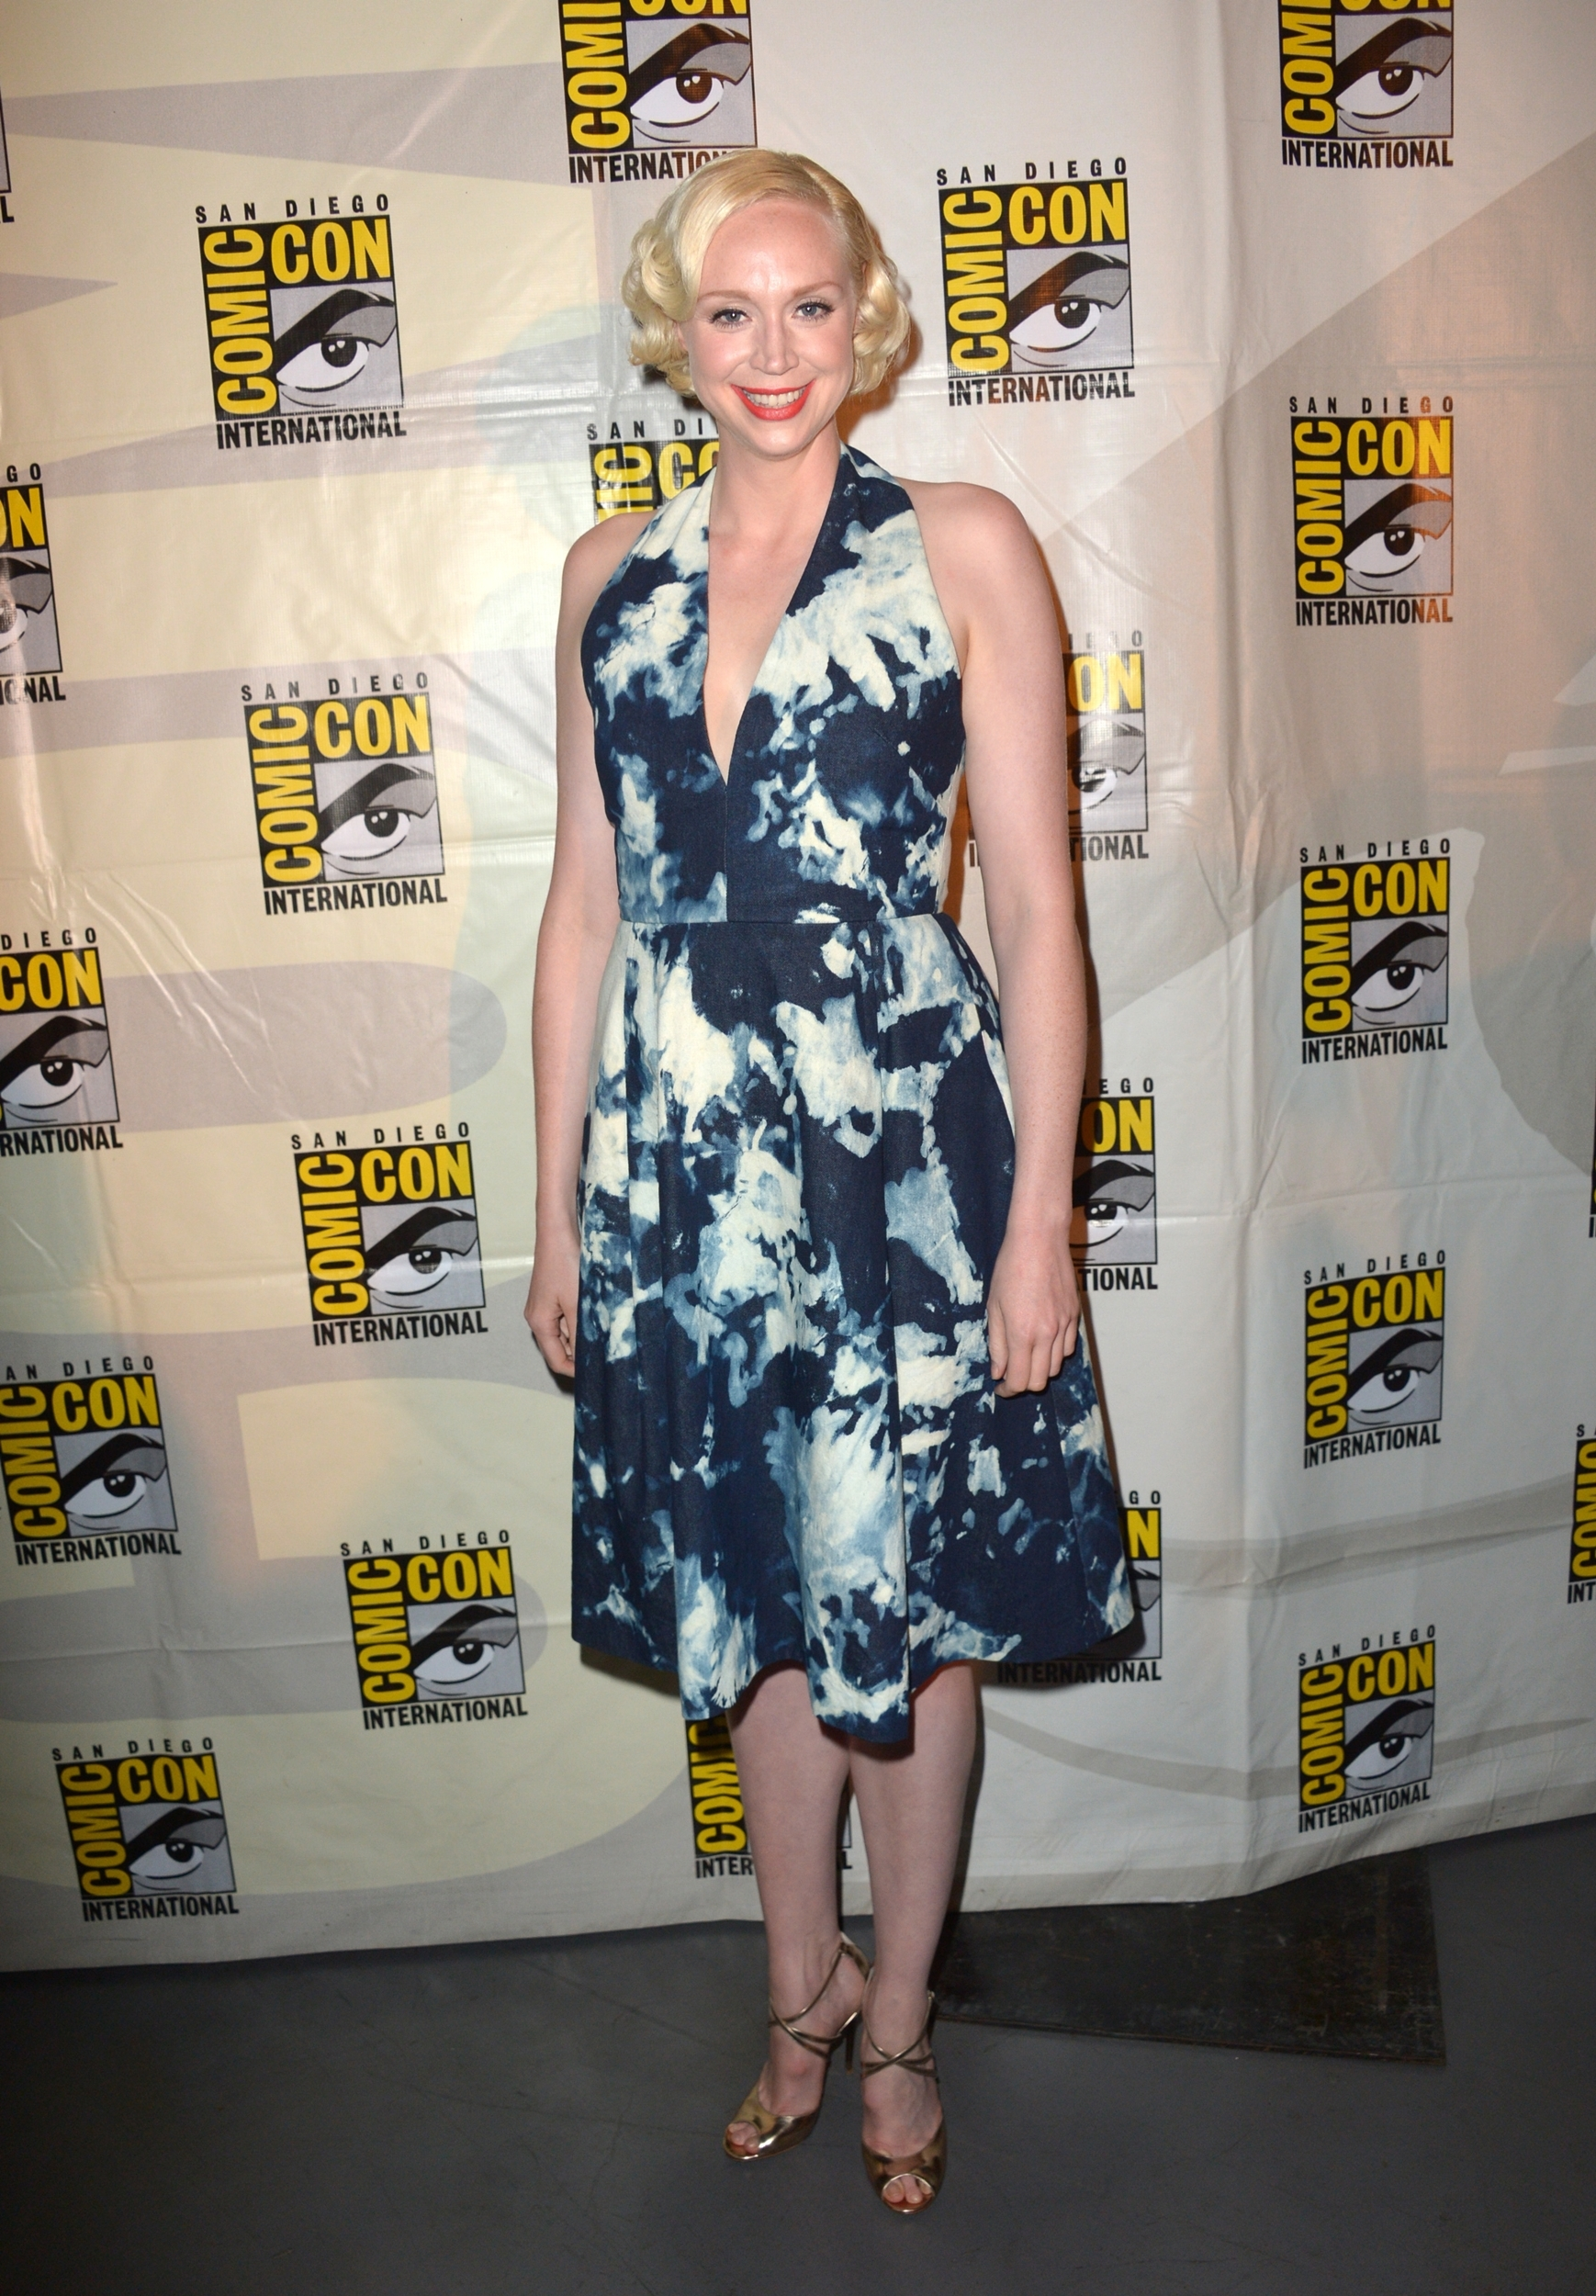 Gwendoline Christie on Comic Con